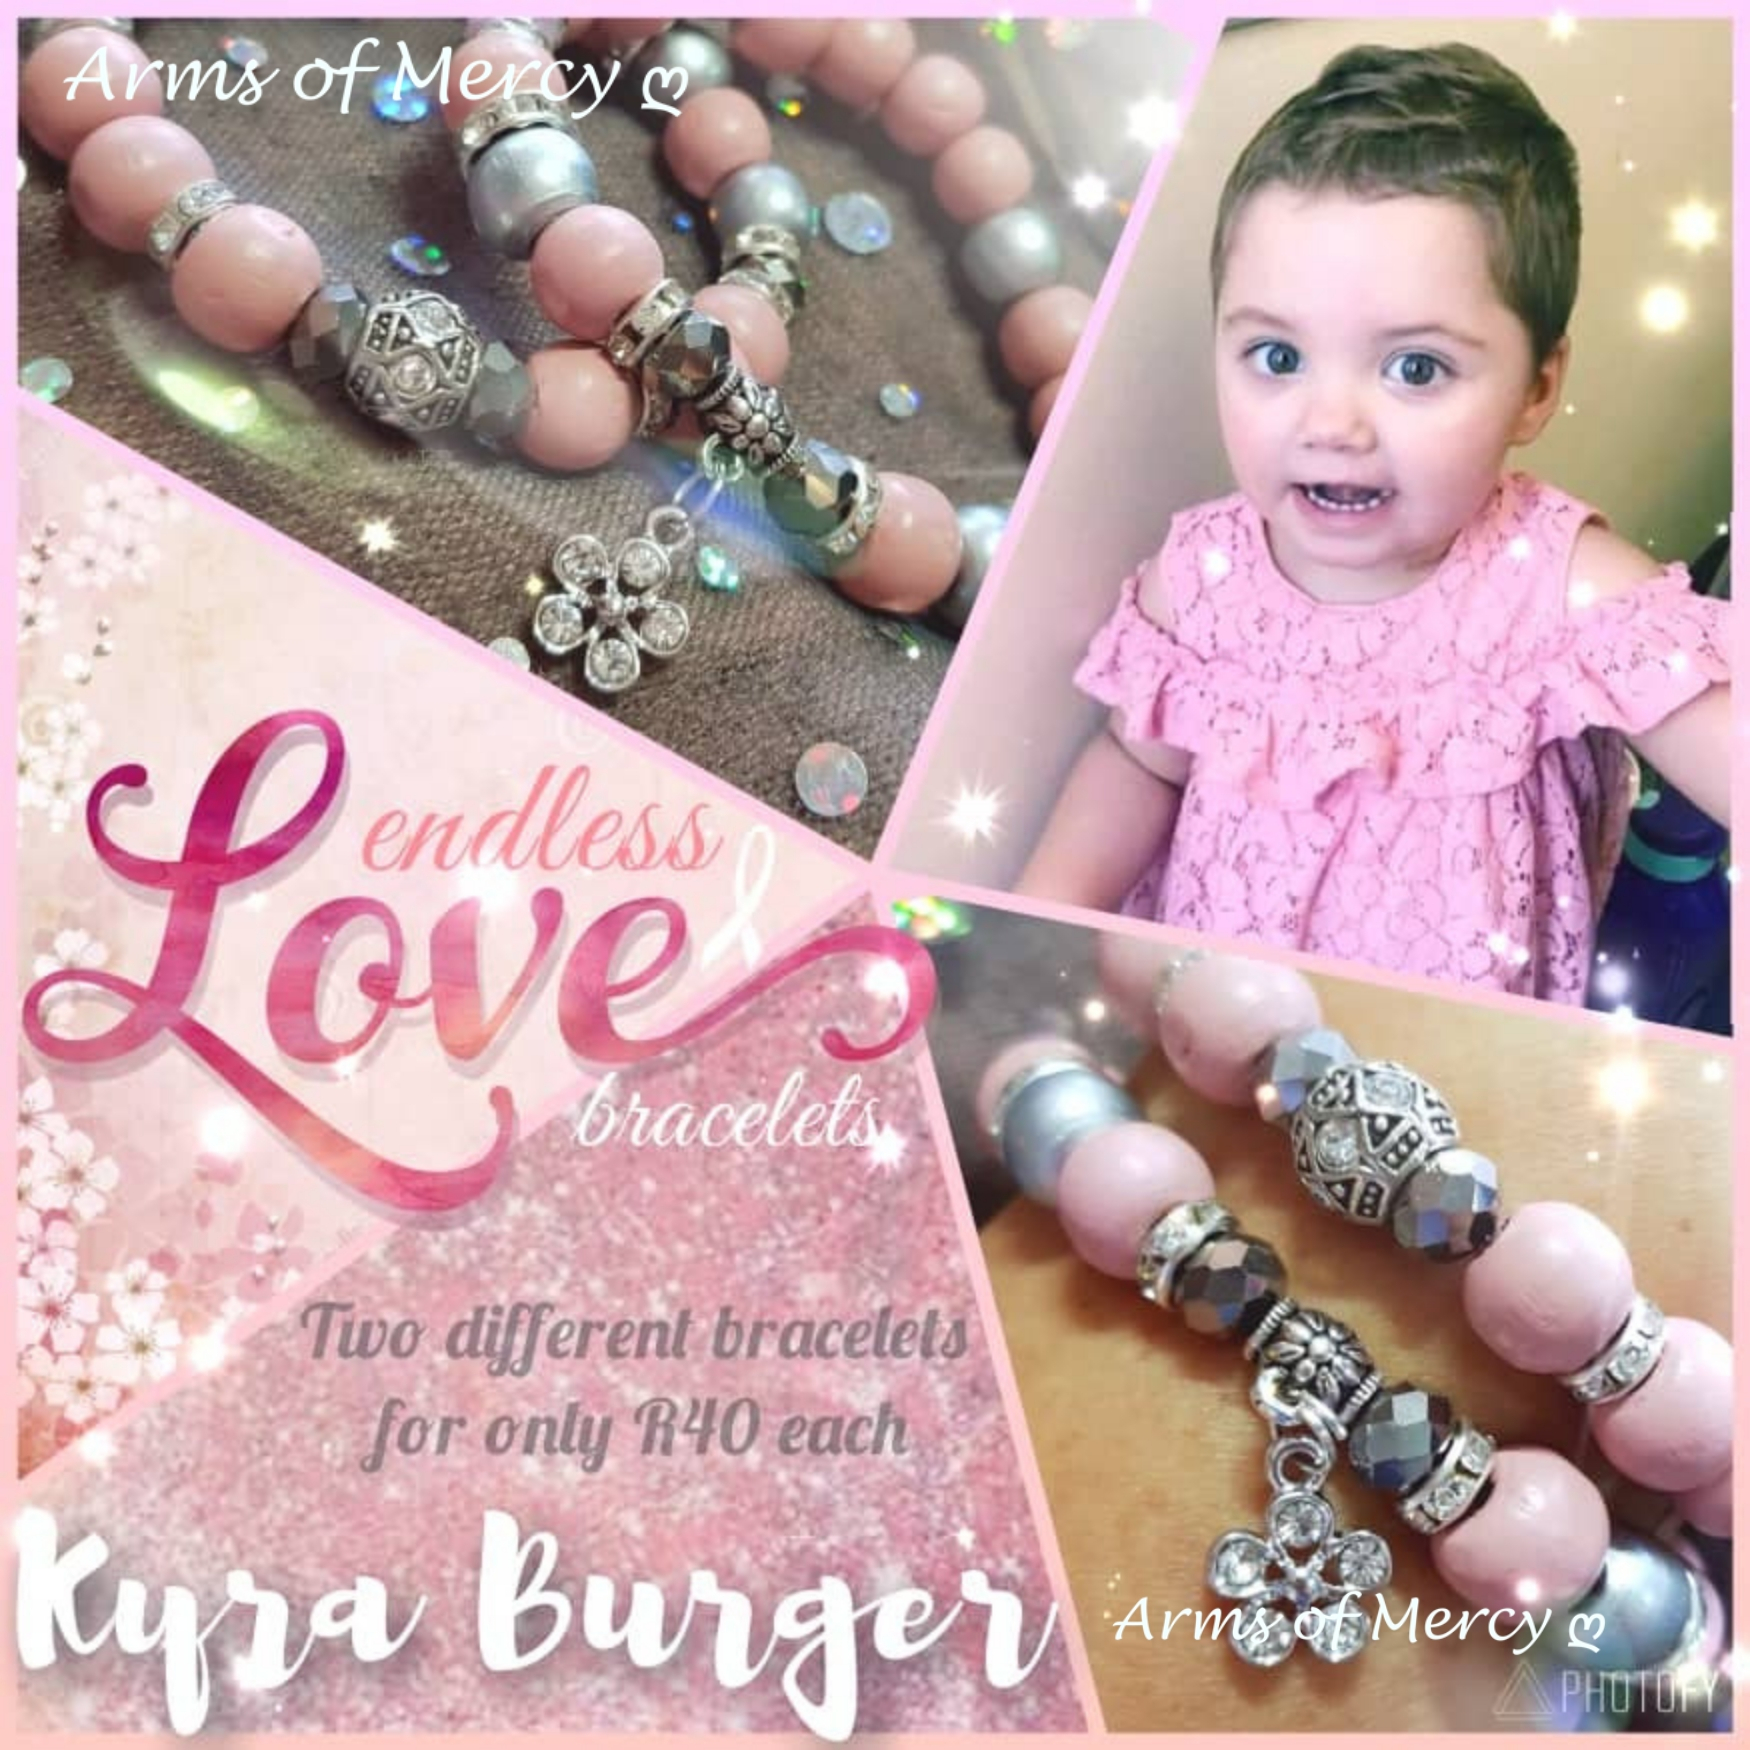 Limited Edition Endless Love Bracelets - Kyra Burger © Arms of Mercy NPC